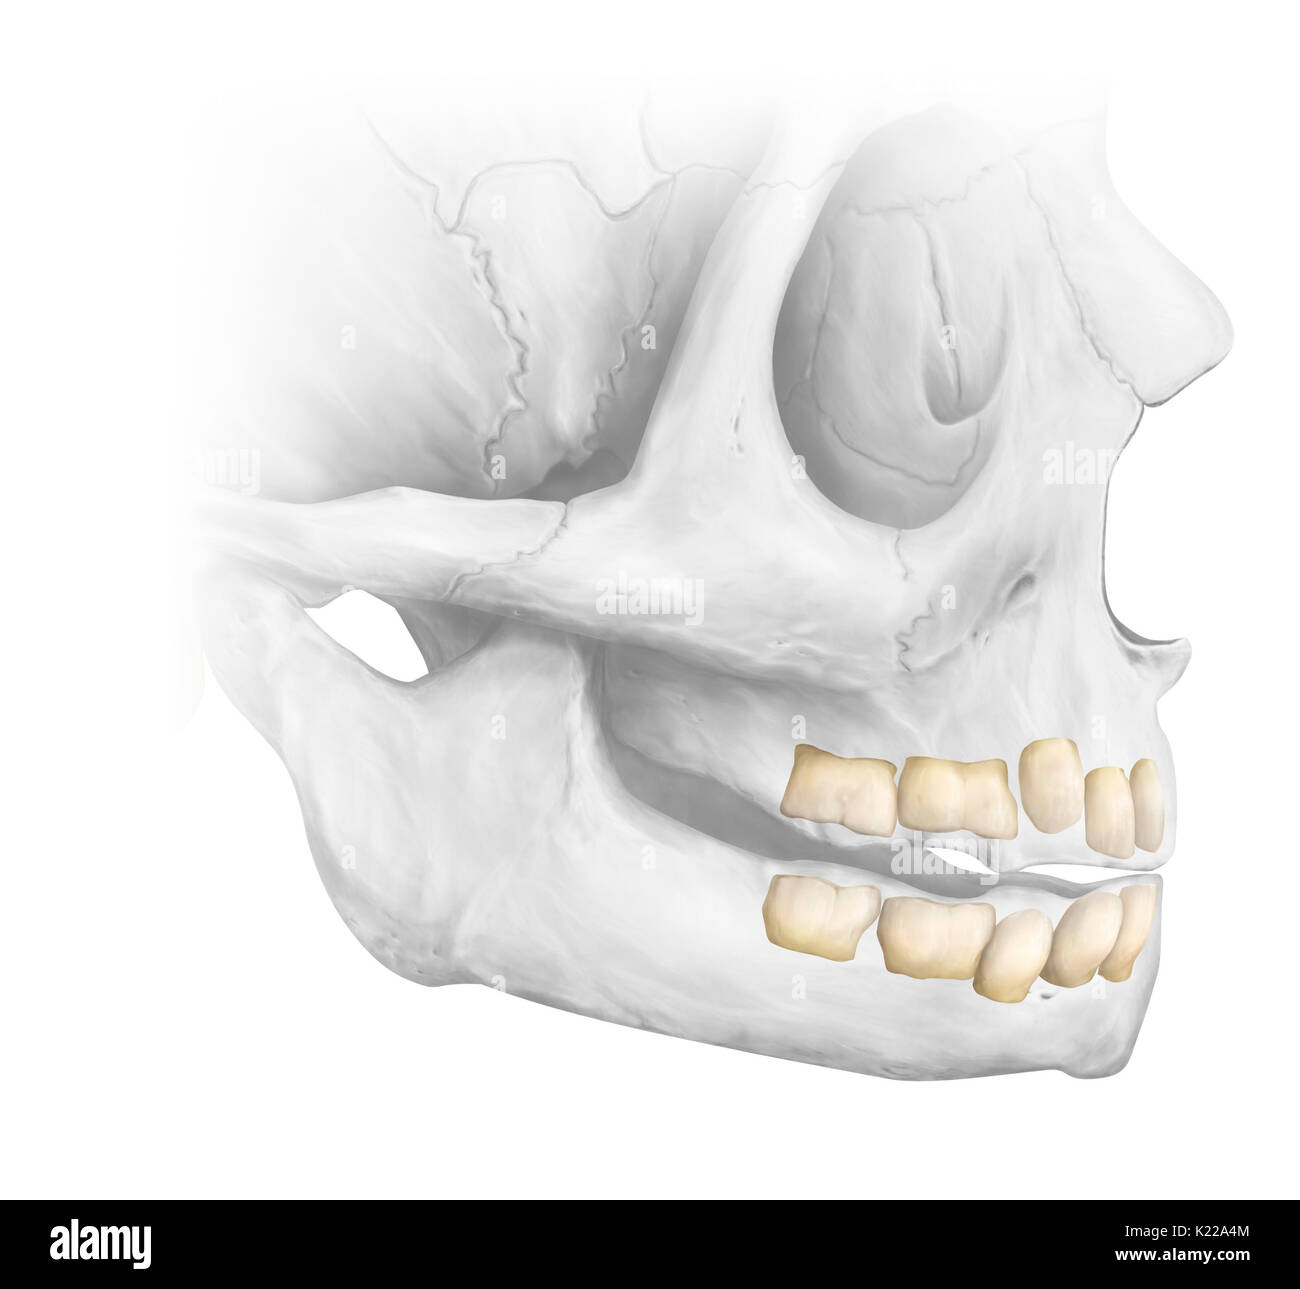 Until approximately the age of 6, the dentition has 20 temporary teeth. The complete adult dentition has 32 teeth: 8 incisors, 4 canines, 8 premolars, and 12 molars. The last molars, called wisdom teeth, are sometimes absent or poorly positioned. - Stock Image